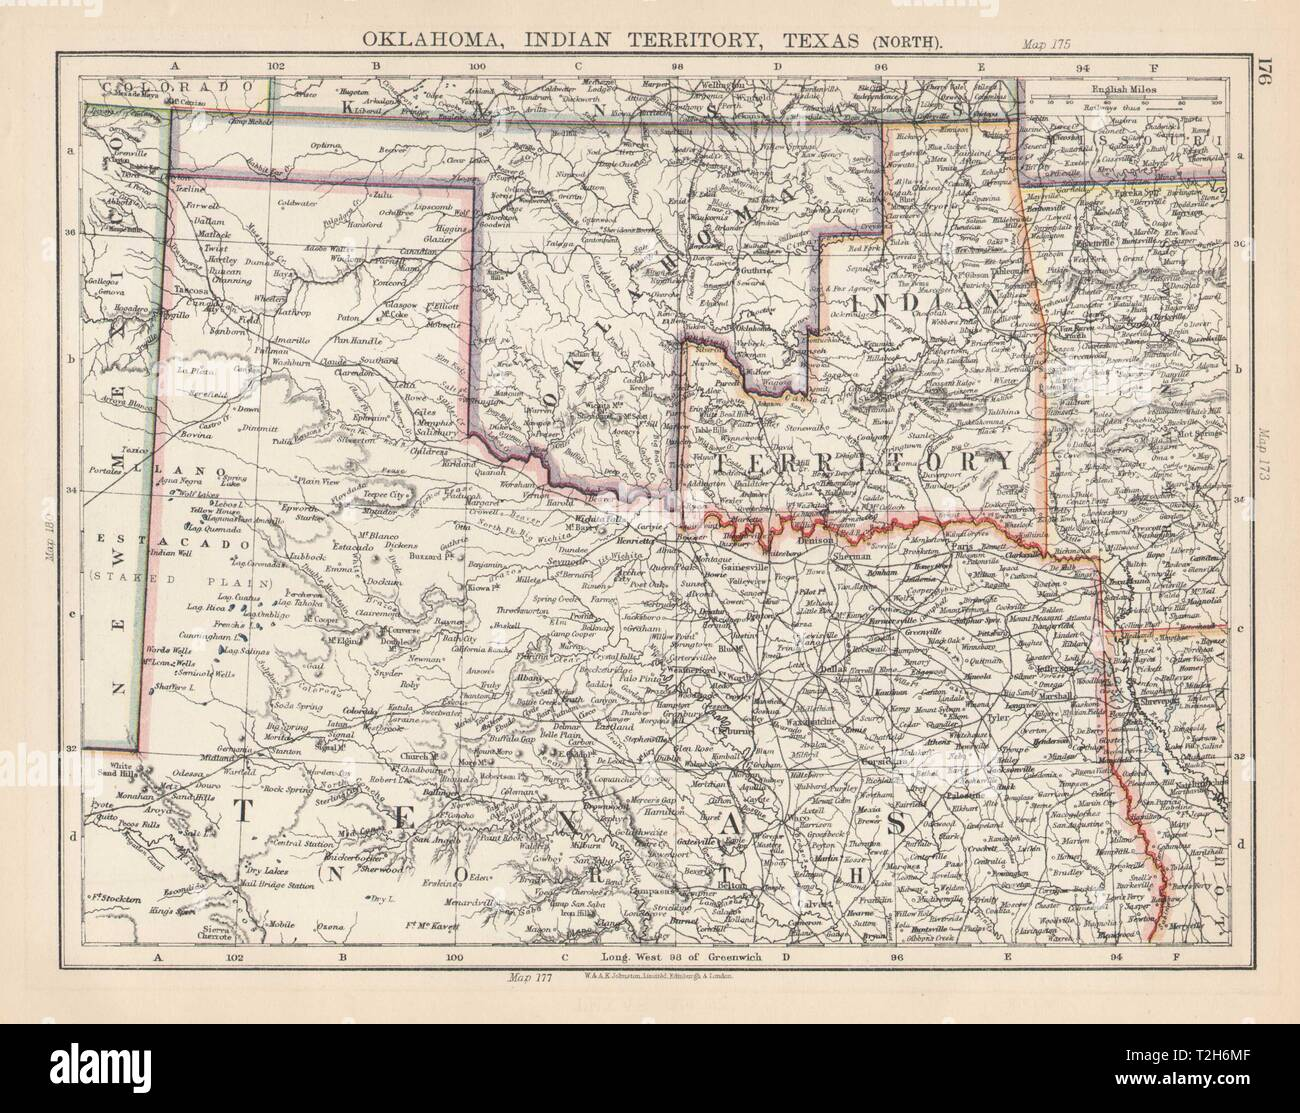 Map Of North Texas And Oklahoma.Usa South Central Oklahoma Indian Territory North Texas